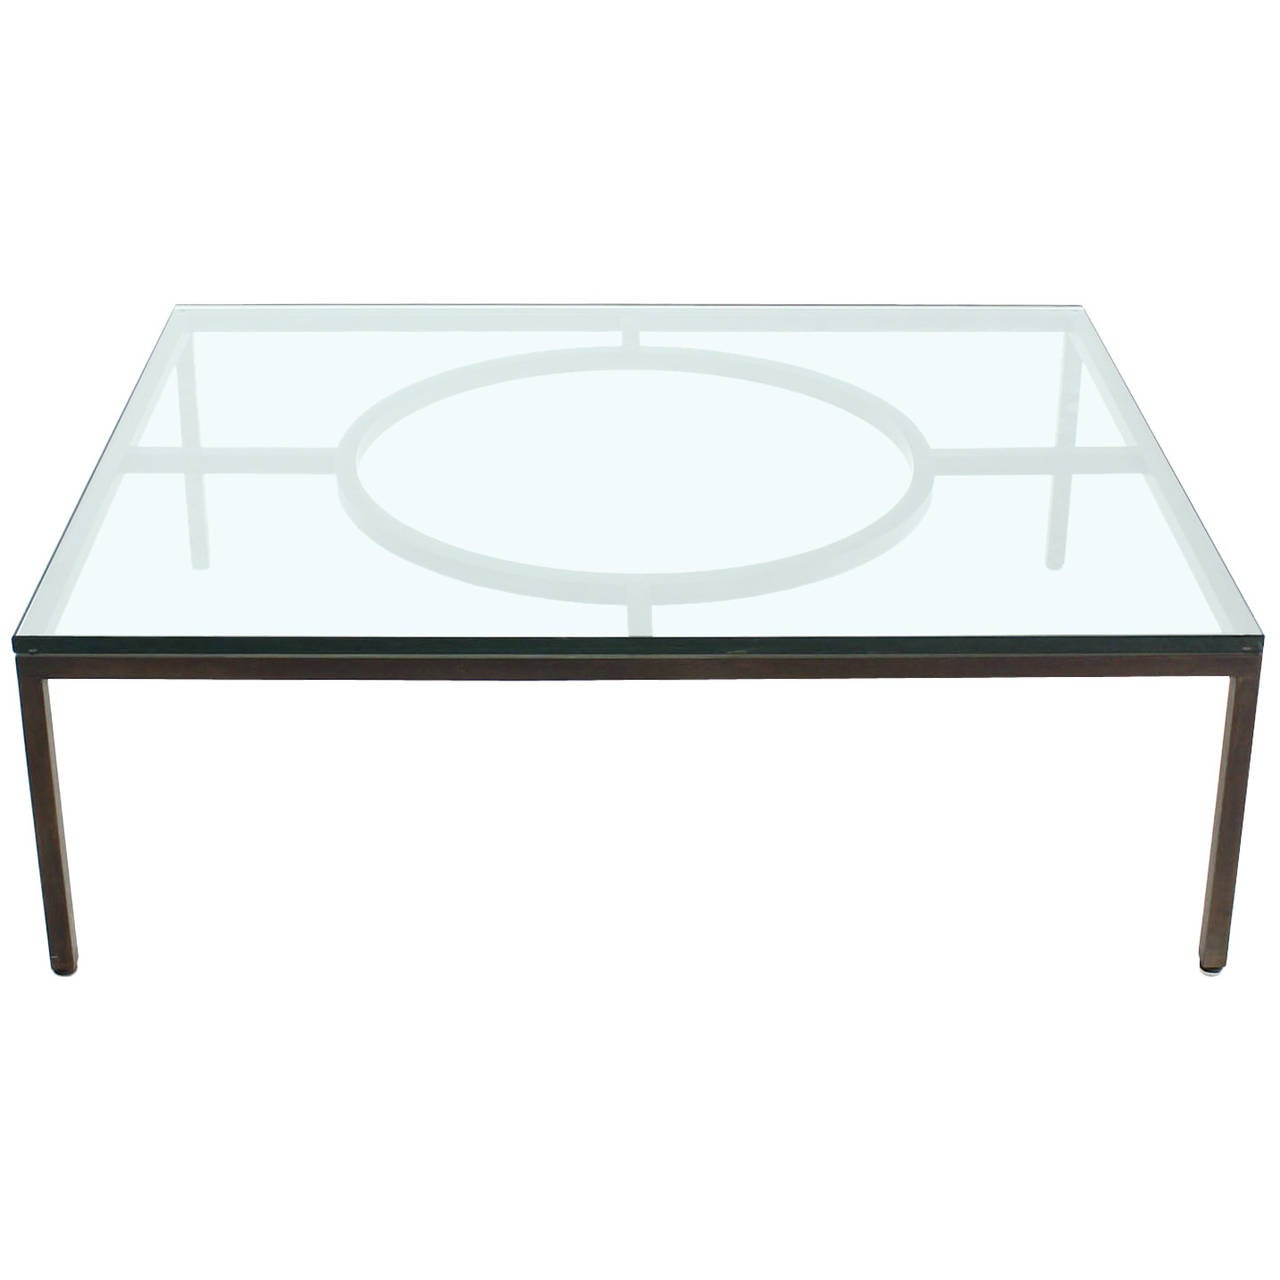 Extra Large Wide Rectangle Bronzed Frame Modern Coffee Table 3 4 Thick Glass For Sale At 1stdibs